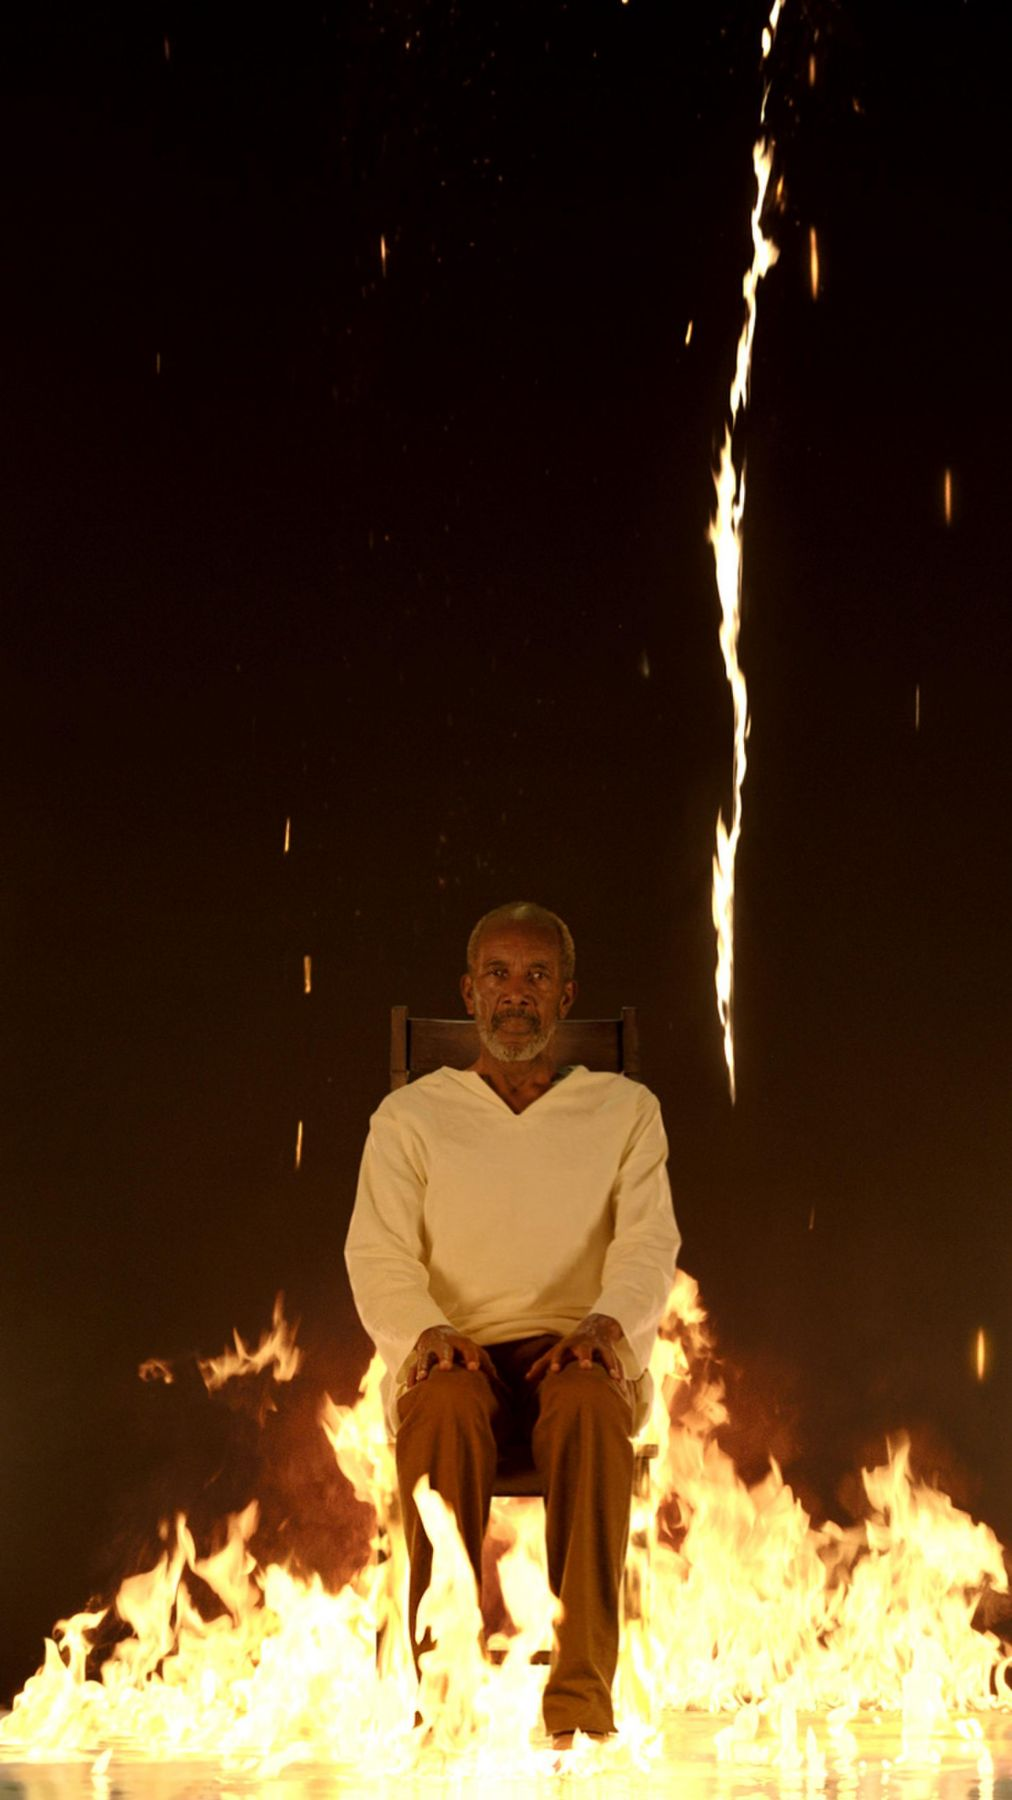 """, BILL VIOLA (æ¯""""å°"""" 维奥拉),Fire Martyr,2014, color high-definition video on plasma display mounted vertically on wall, 42 3/8 x 24 1/2 x 2 5/8 in. 7:10 minutes. Executive producer: Kira Perov,"""